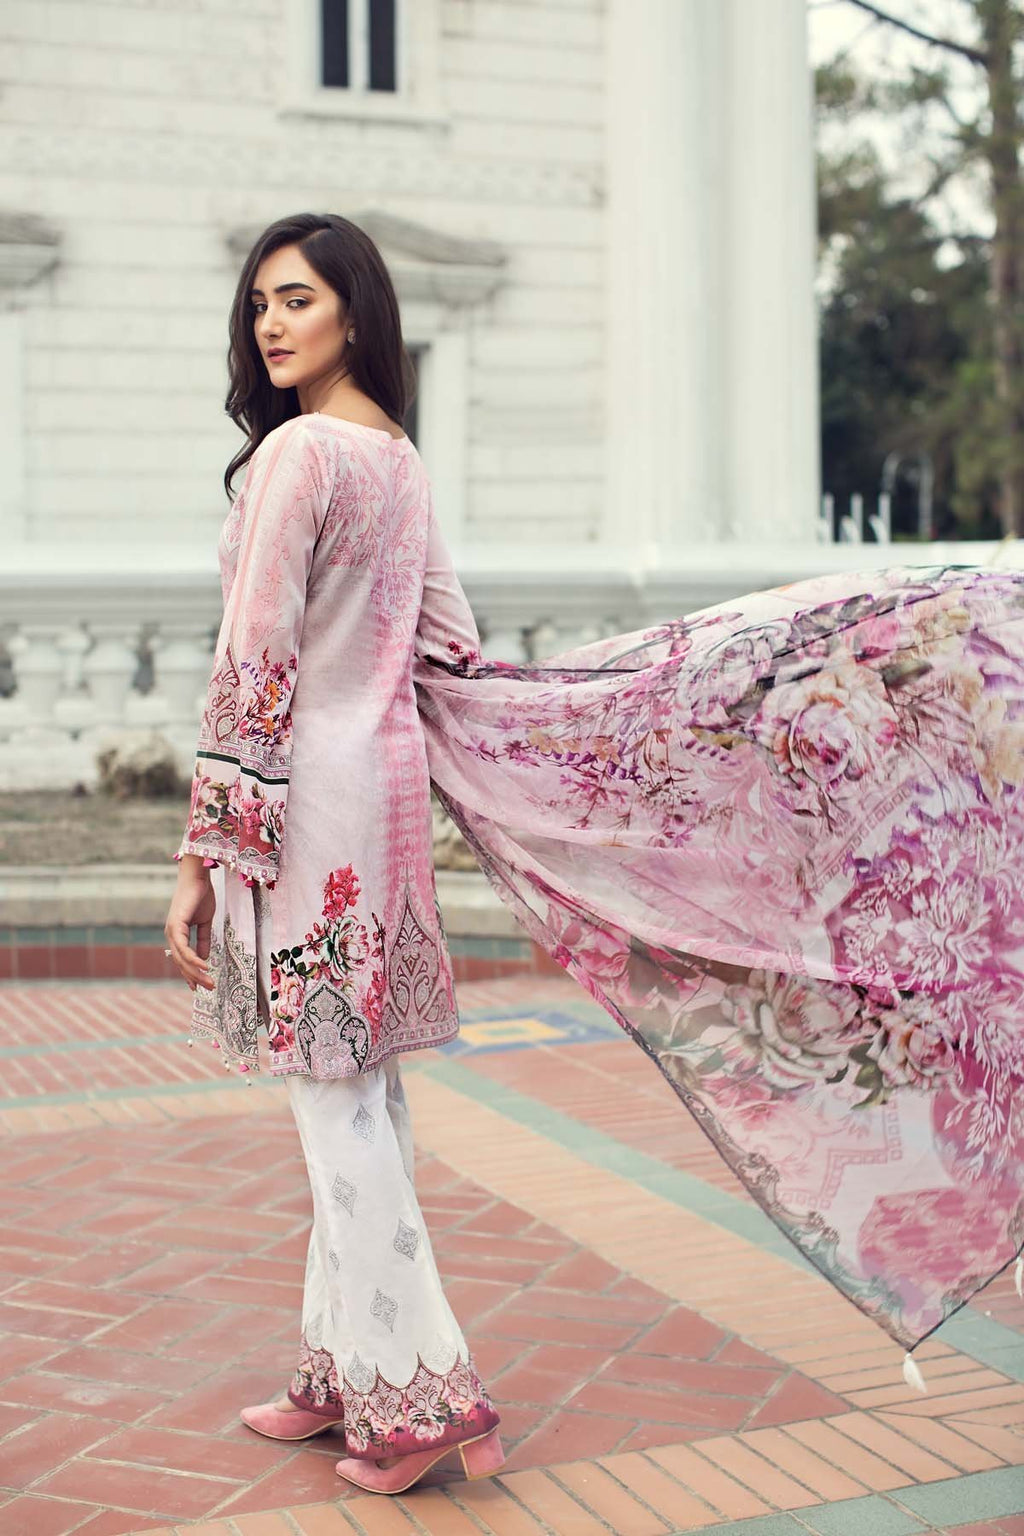 IRIS Summer Lawn 2019 suit Liliana - Embroidered lawn kameez, printed shalwar and chiffon dupatta